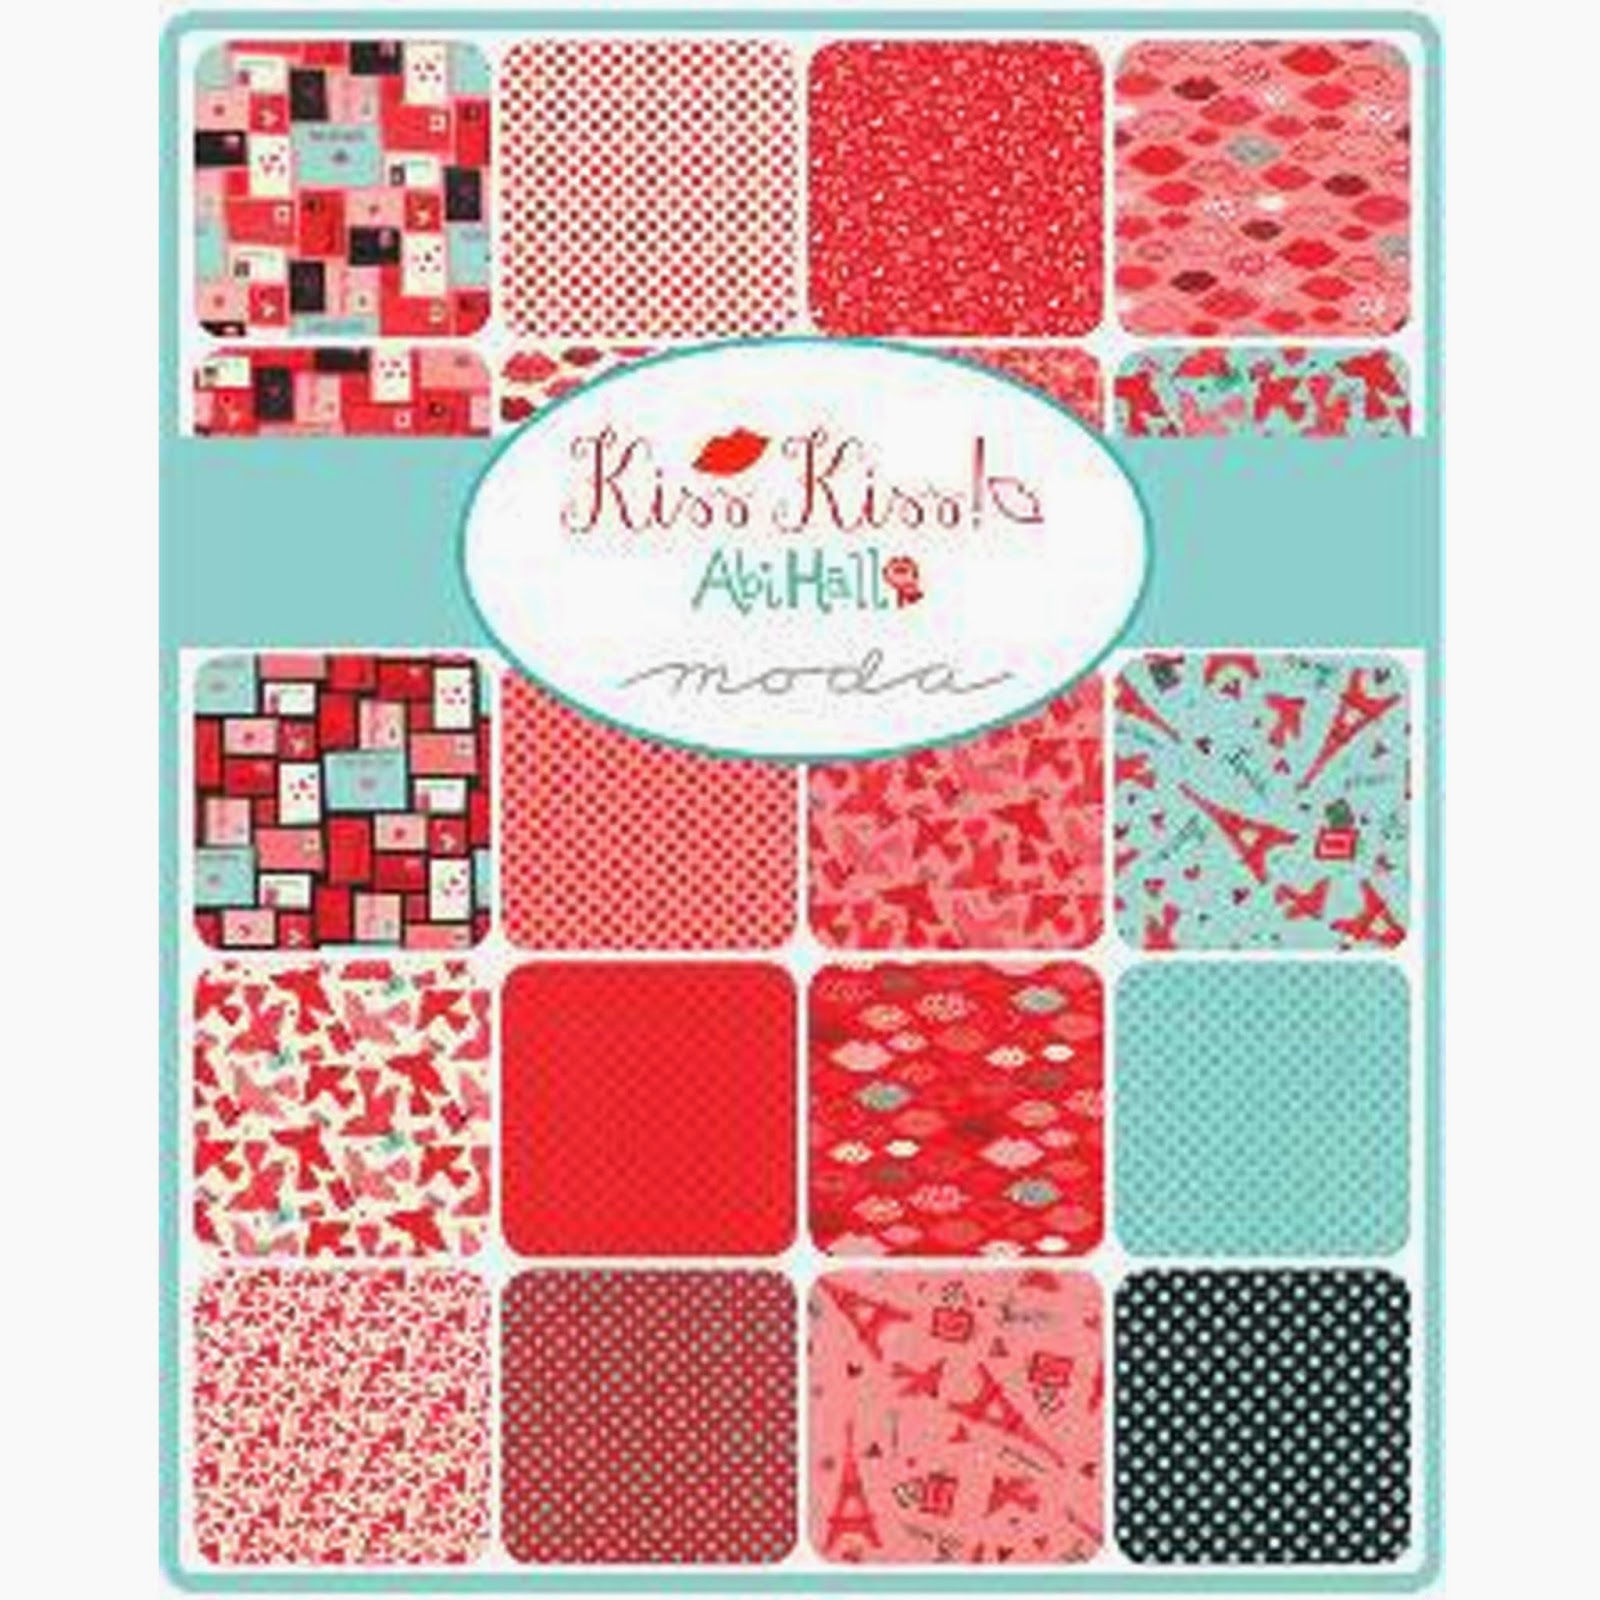 Moda KISS KISS Fabric by Abi Hall for Moda Fabrics